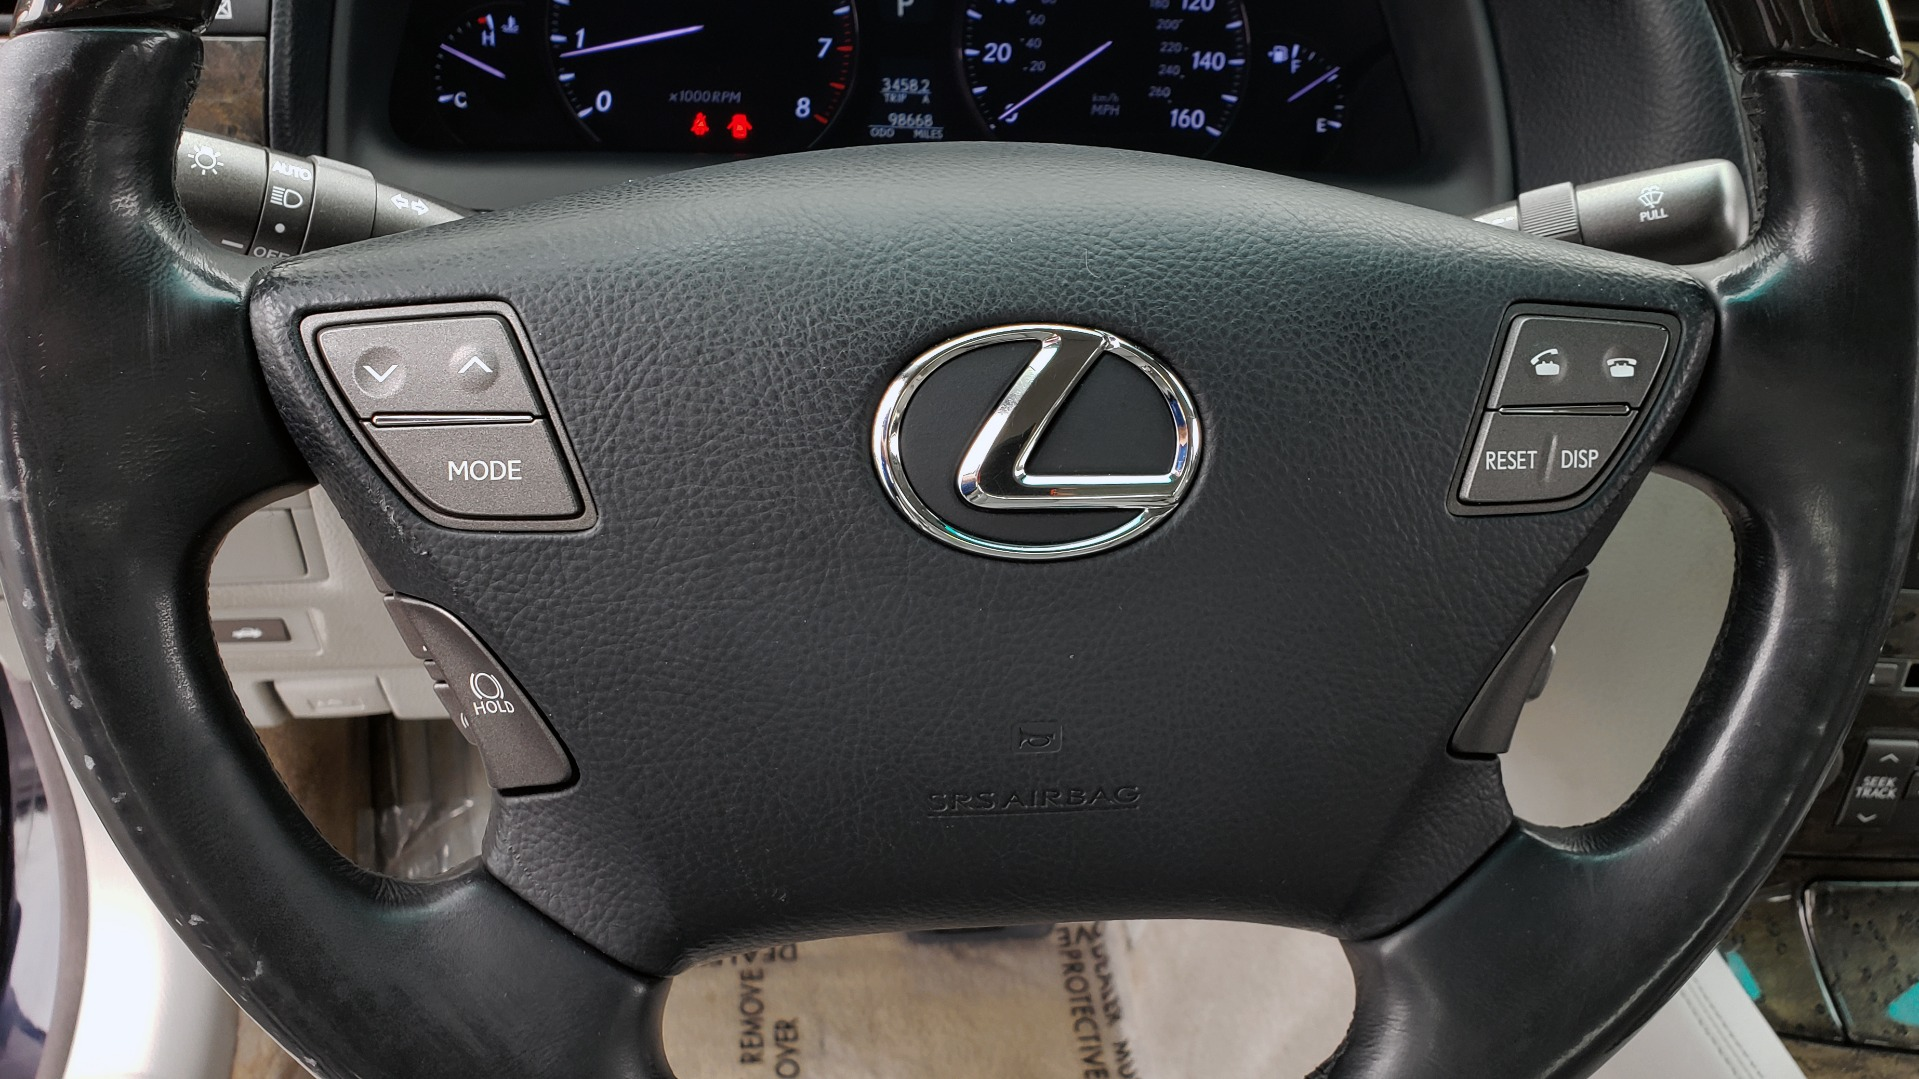 Used 2008 Lexus LS 460 LWB LUXURY SEDAN / MARK LEVINSON / INT PARK ASST / REARVIEW for sale Sold at Formula Imports in Charlotte NC 28227 35